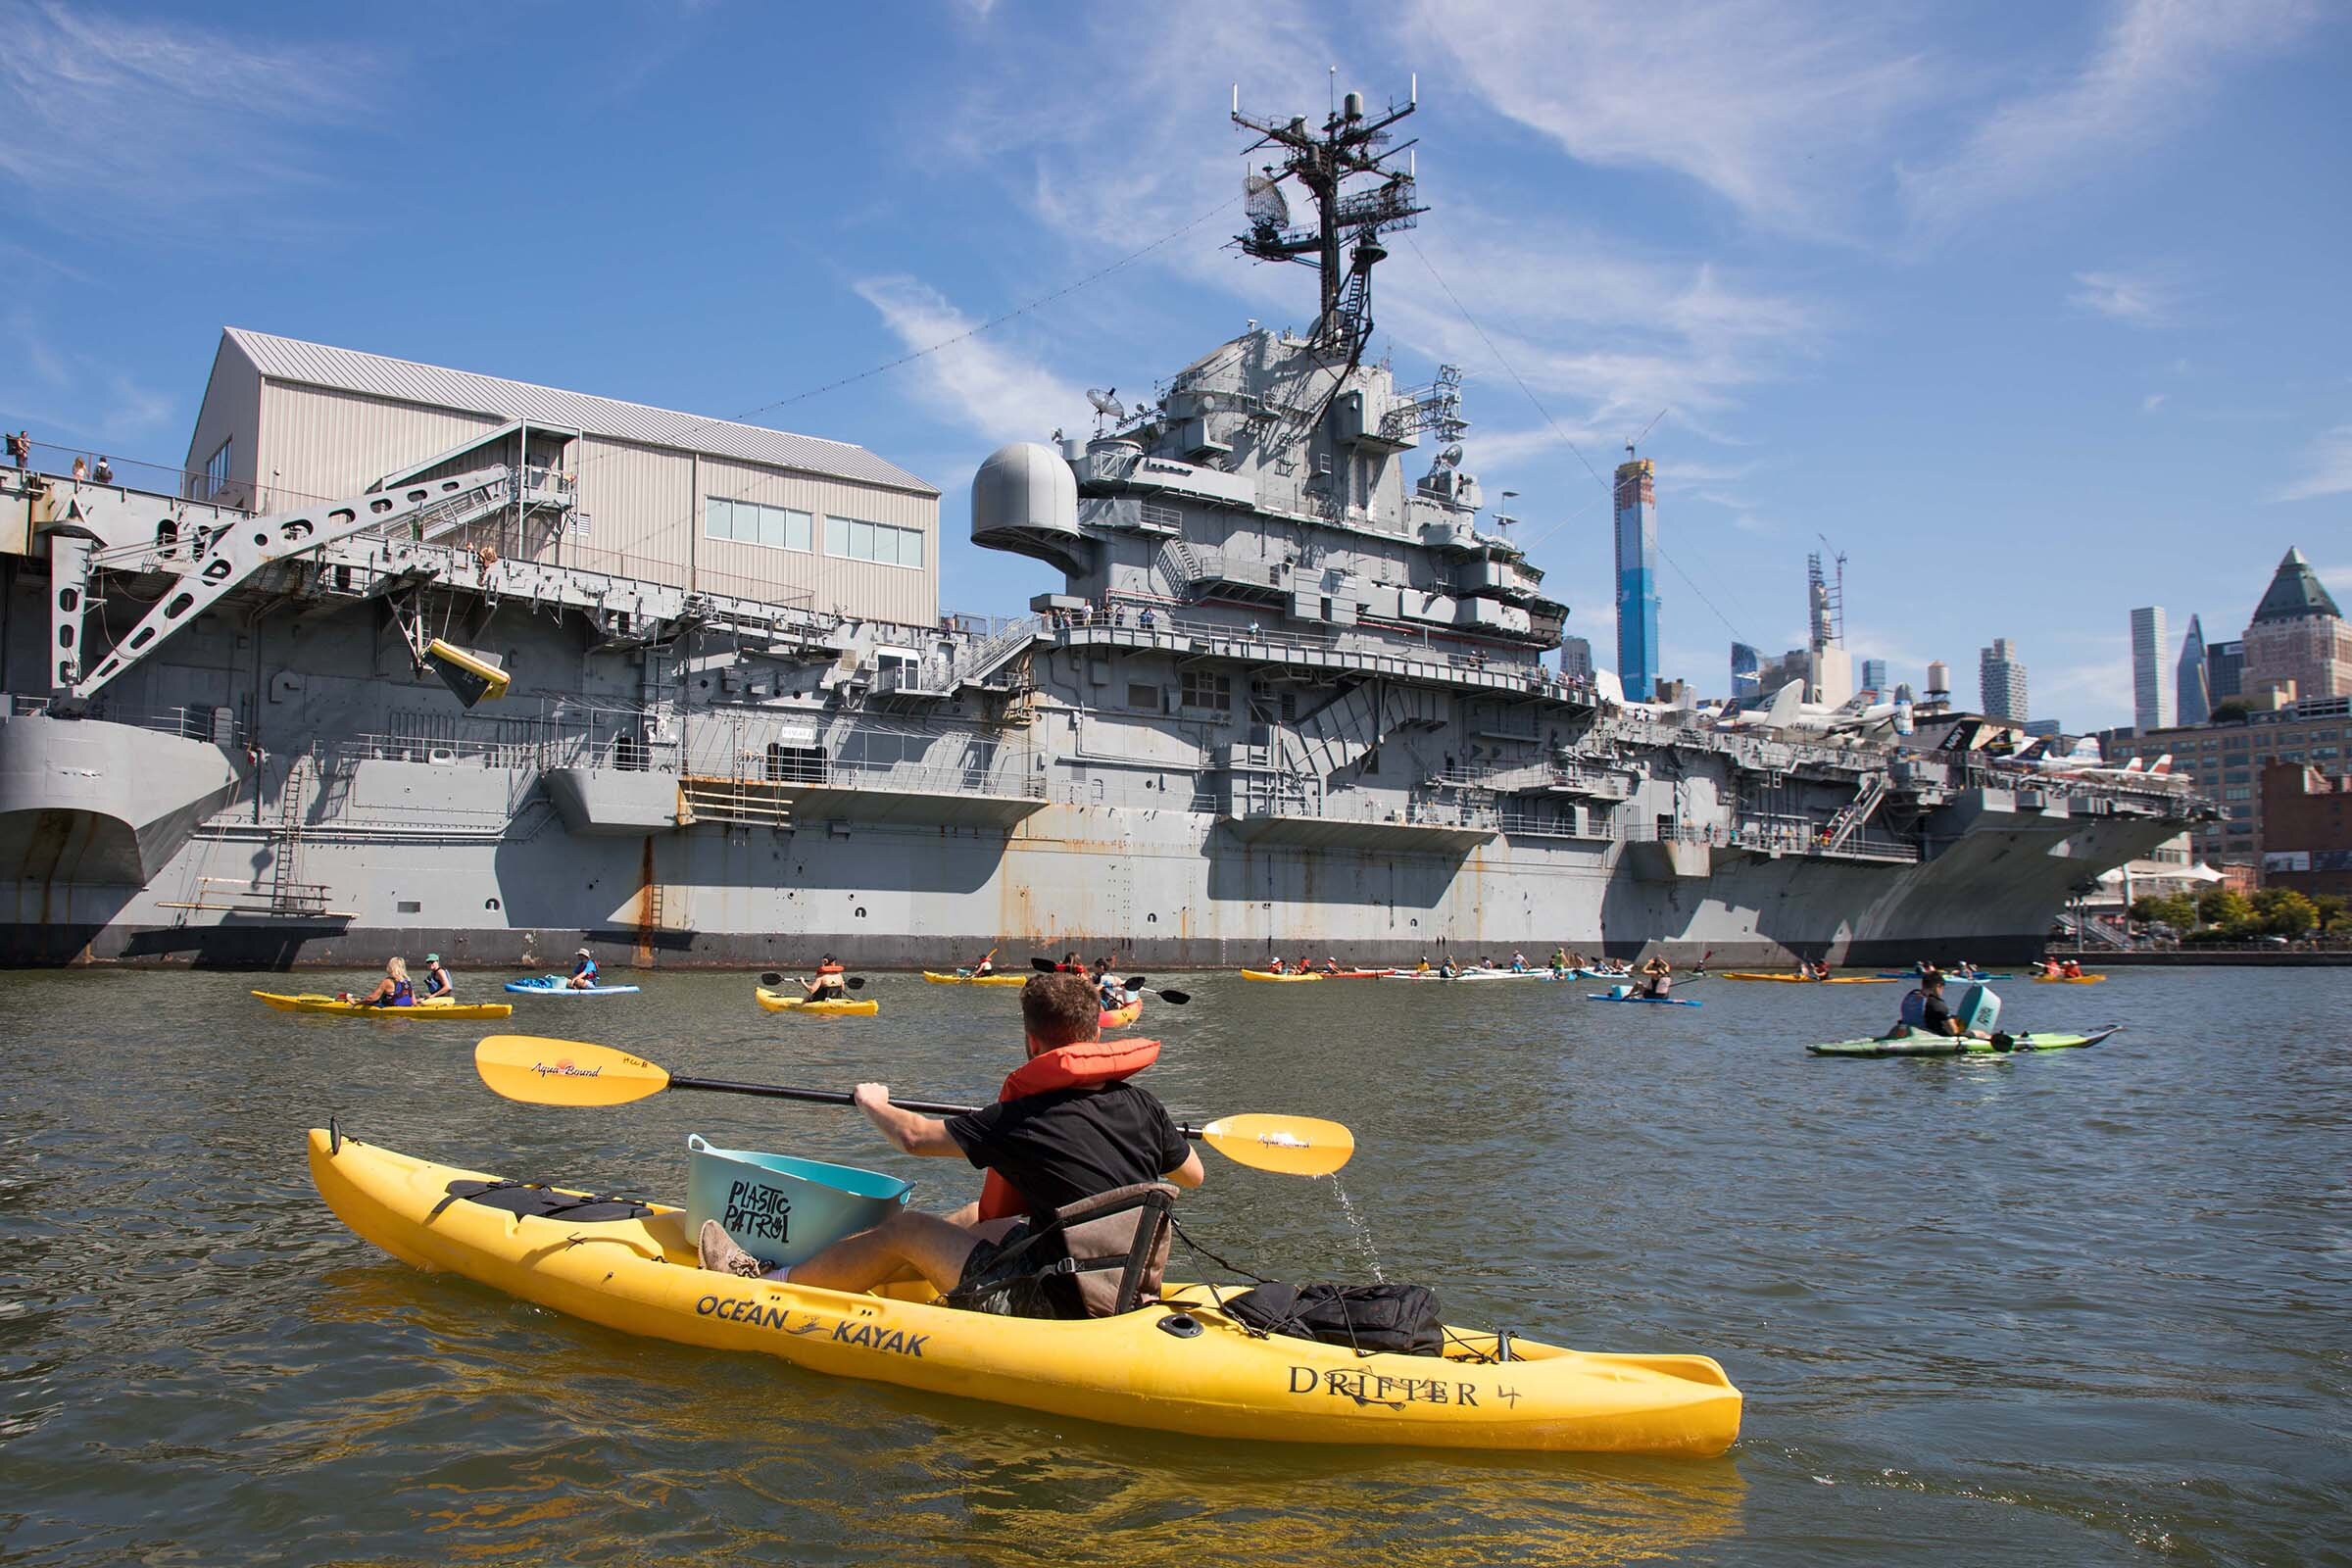 Pier-84-HRPK-Manhattan-Kayak-Hudson-Intrepid.jpg